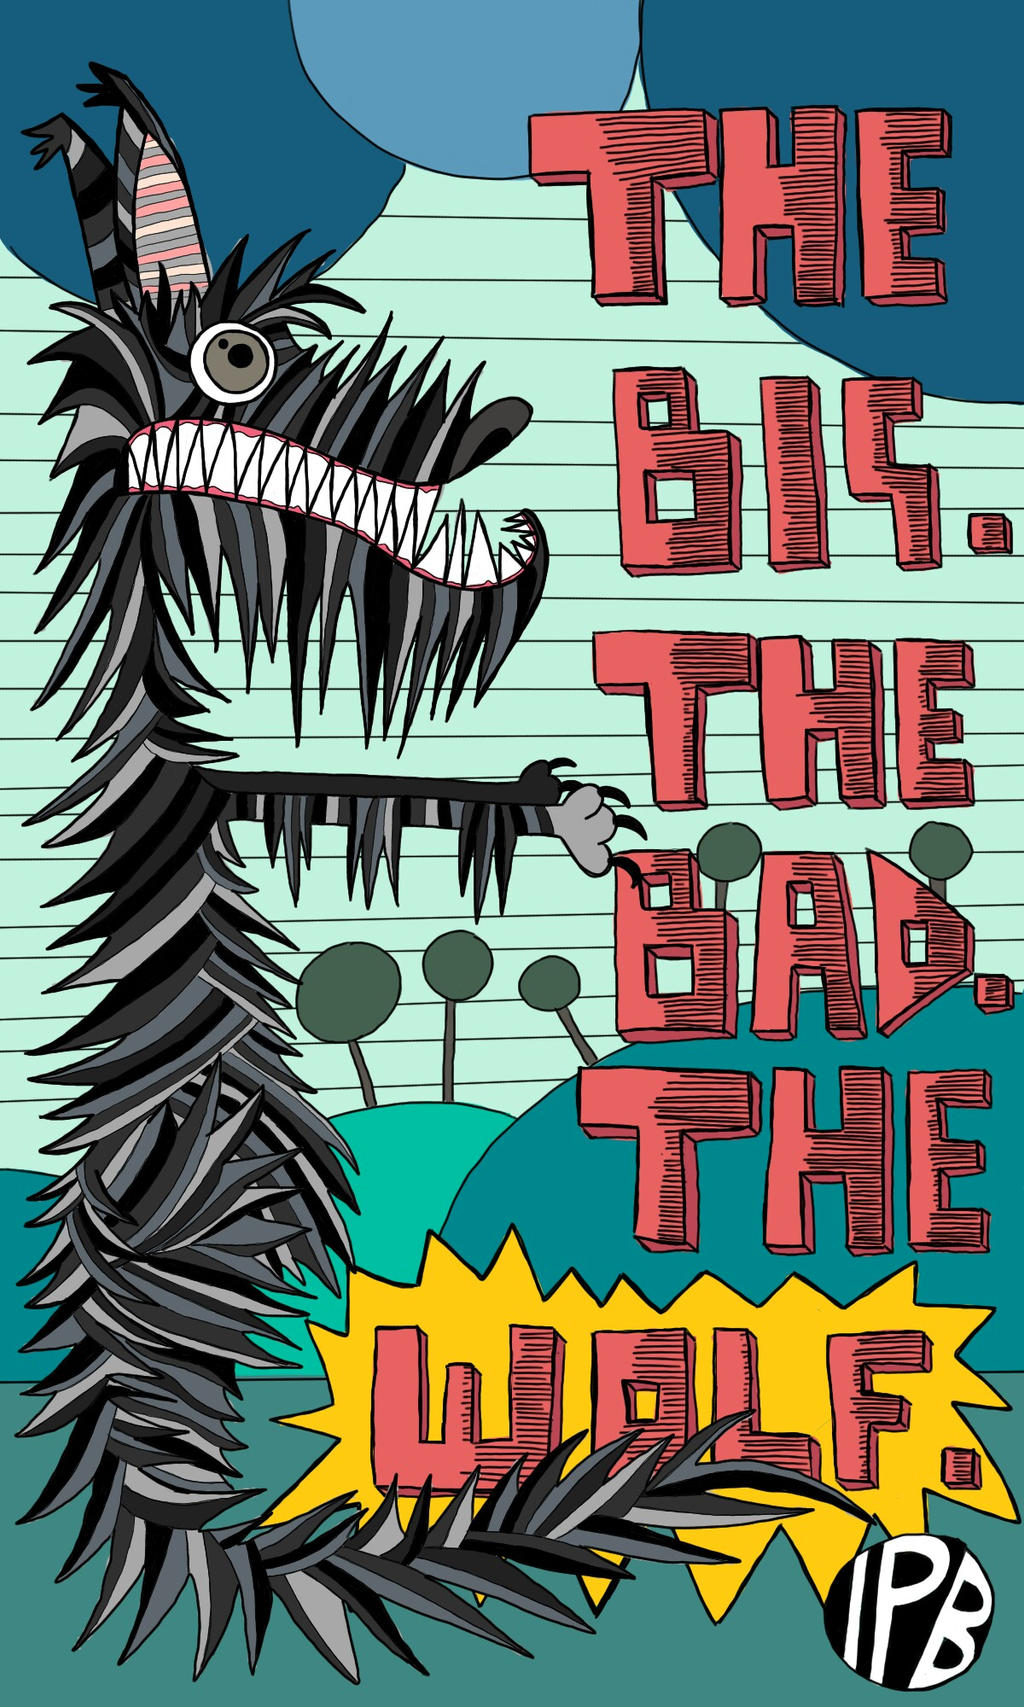 The big. The bad. The wolf. by ivapb